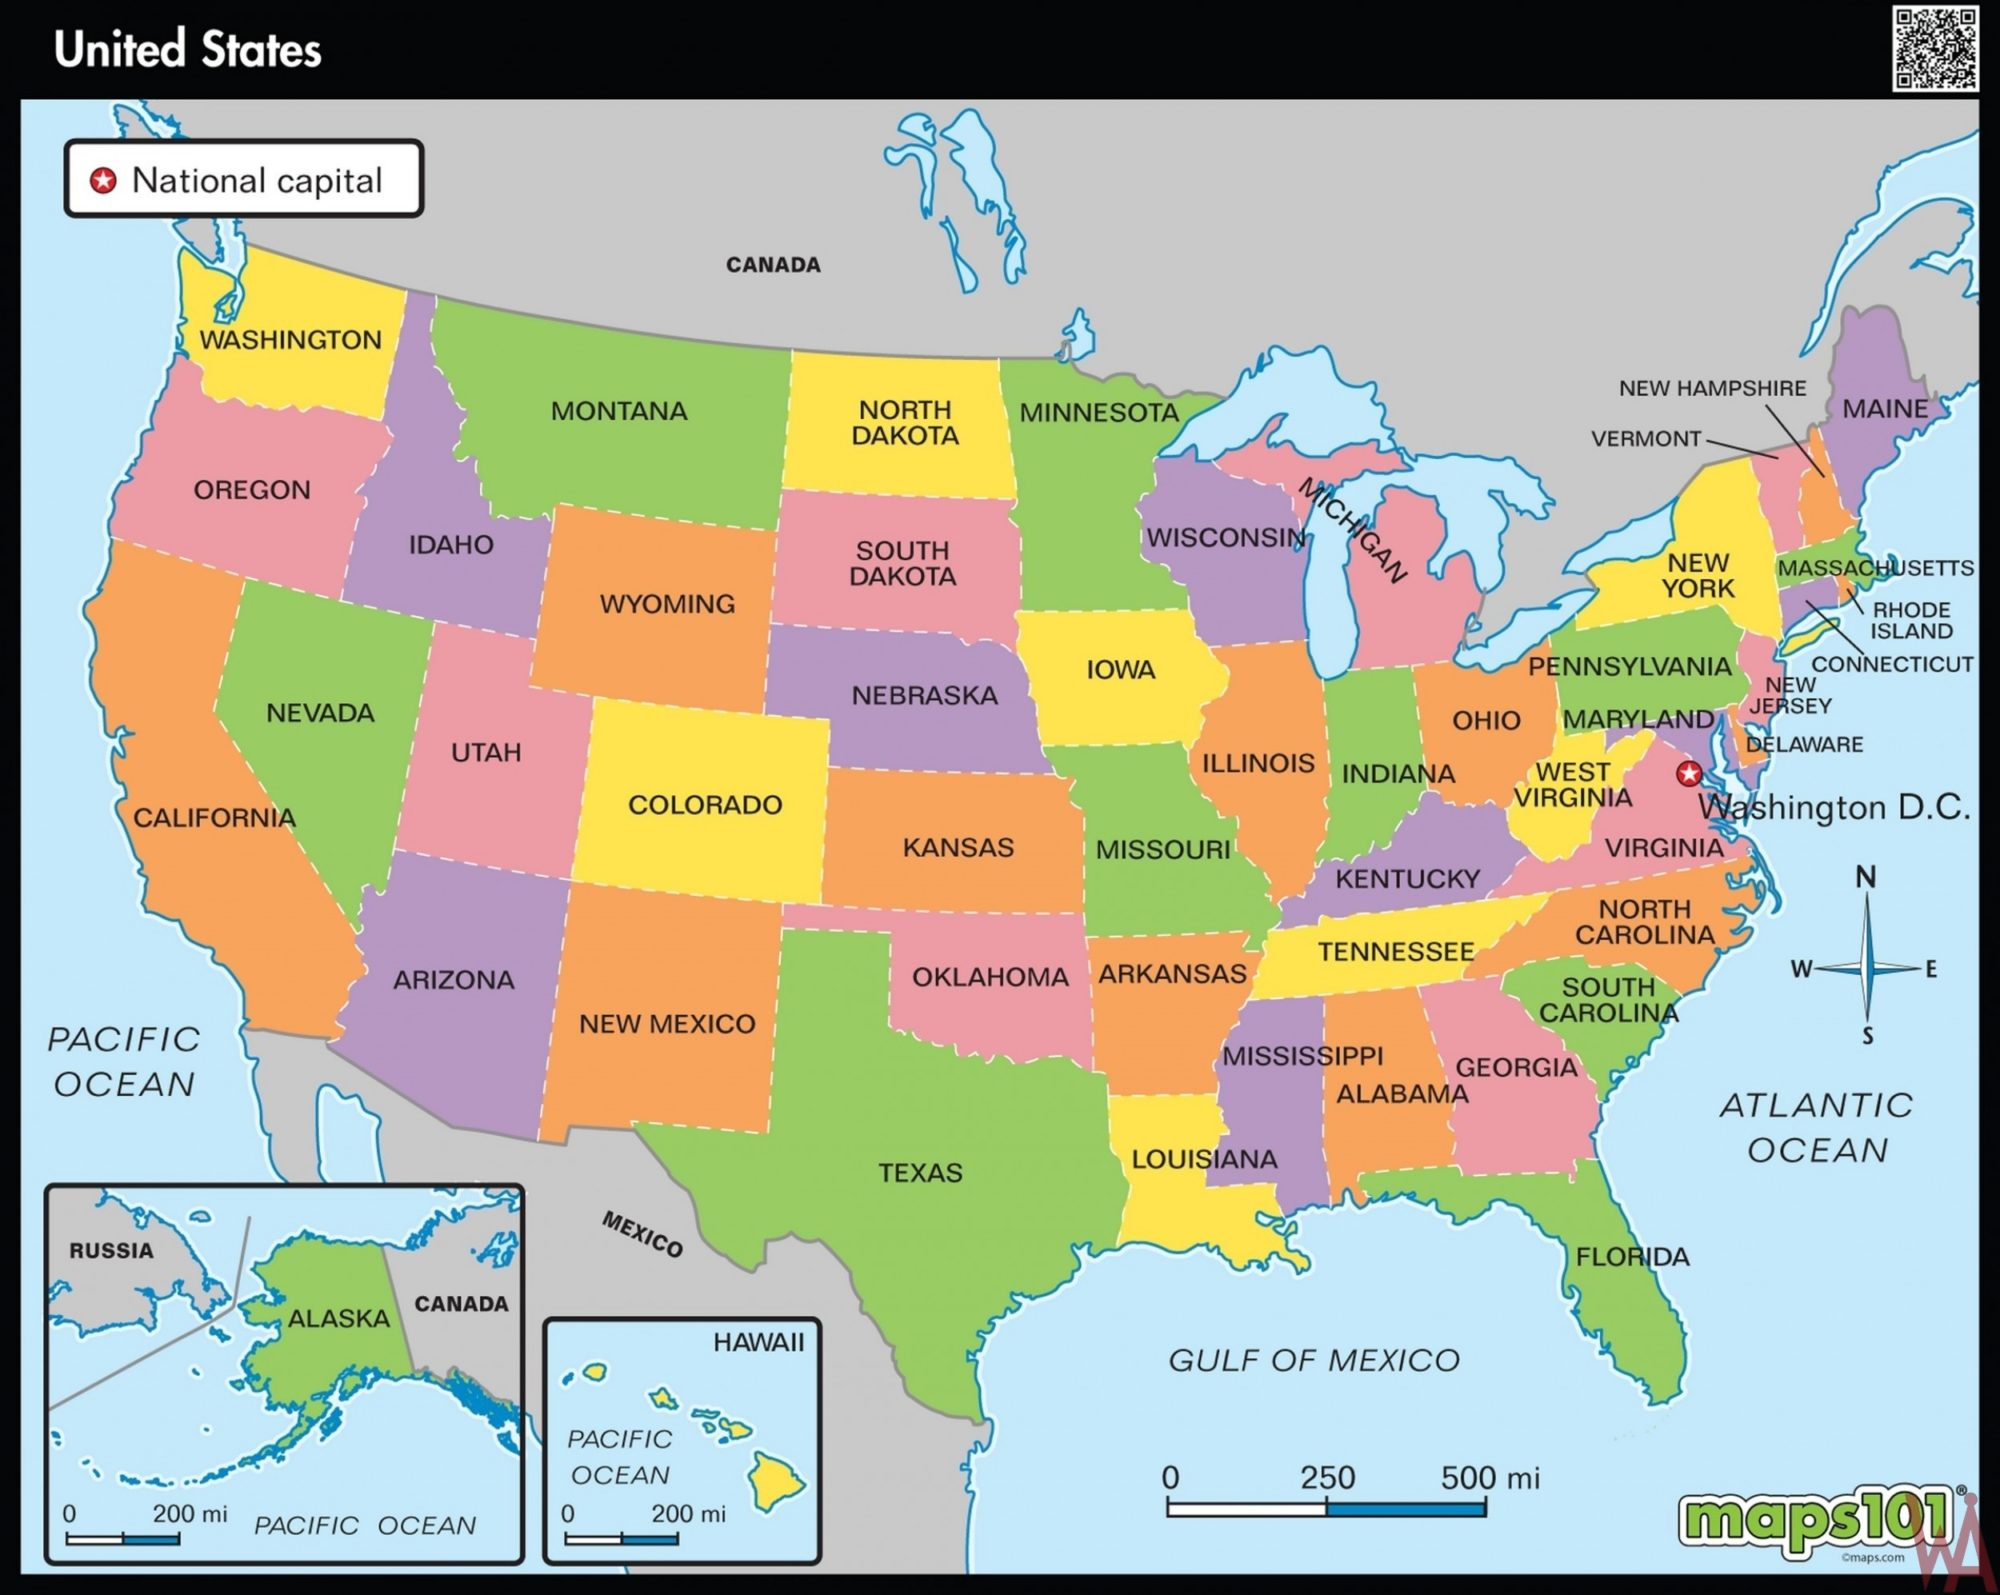 Hd Wallpaper Large State map of the US | WhatsAnswer